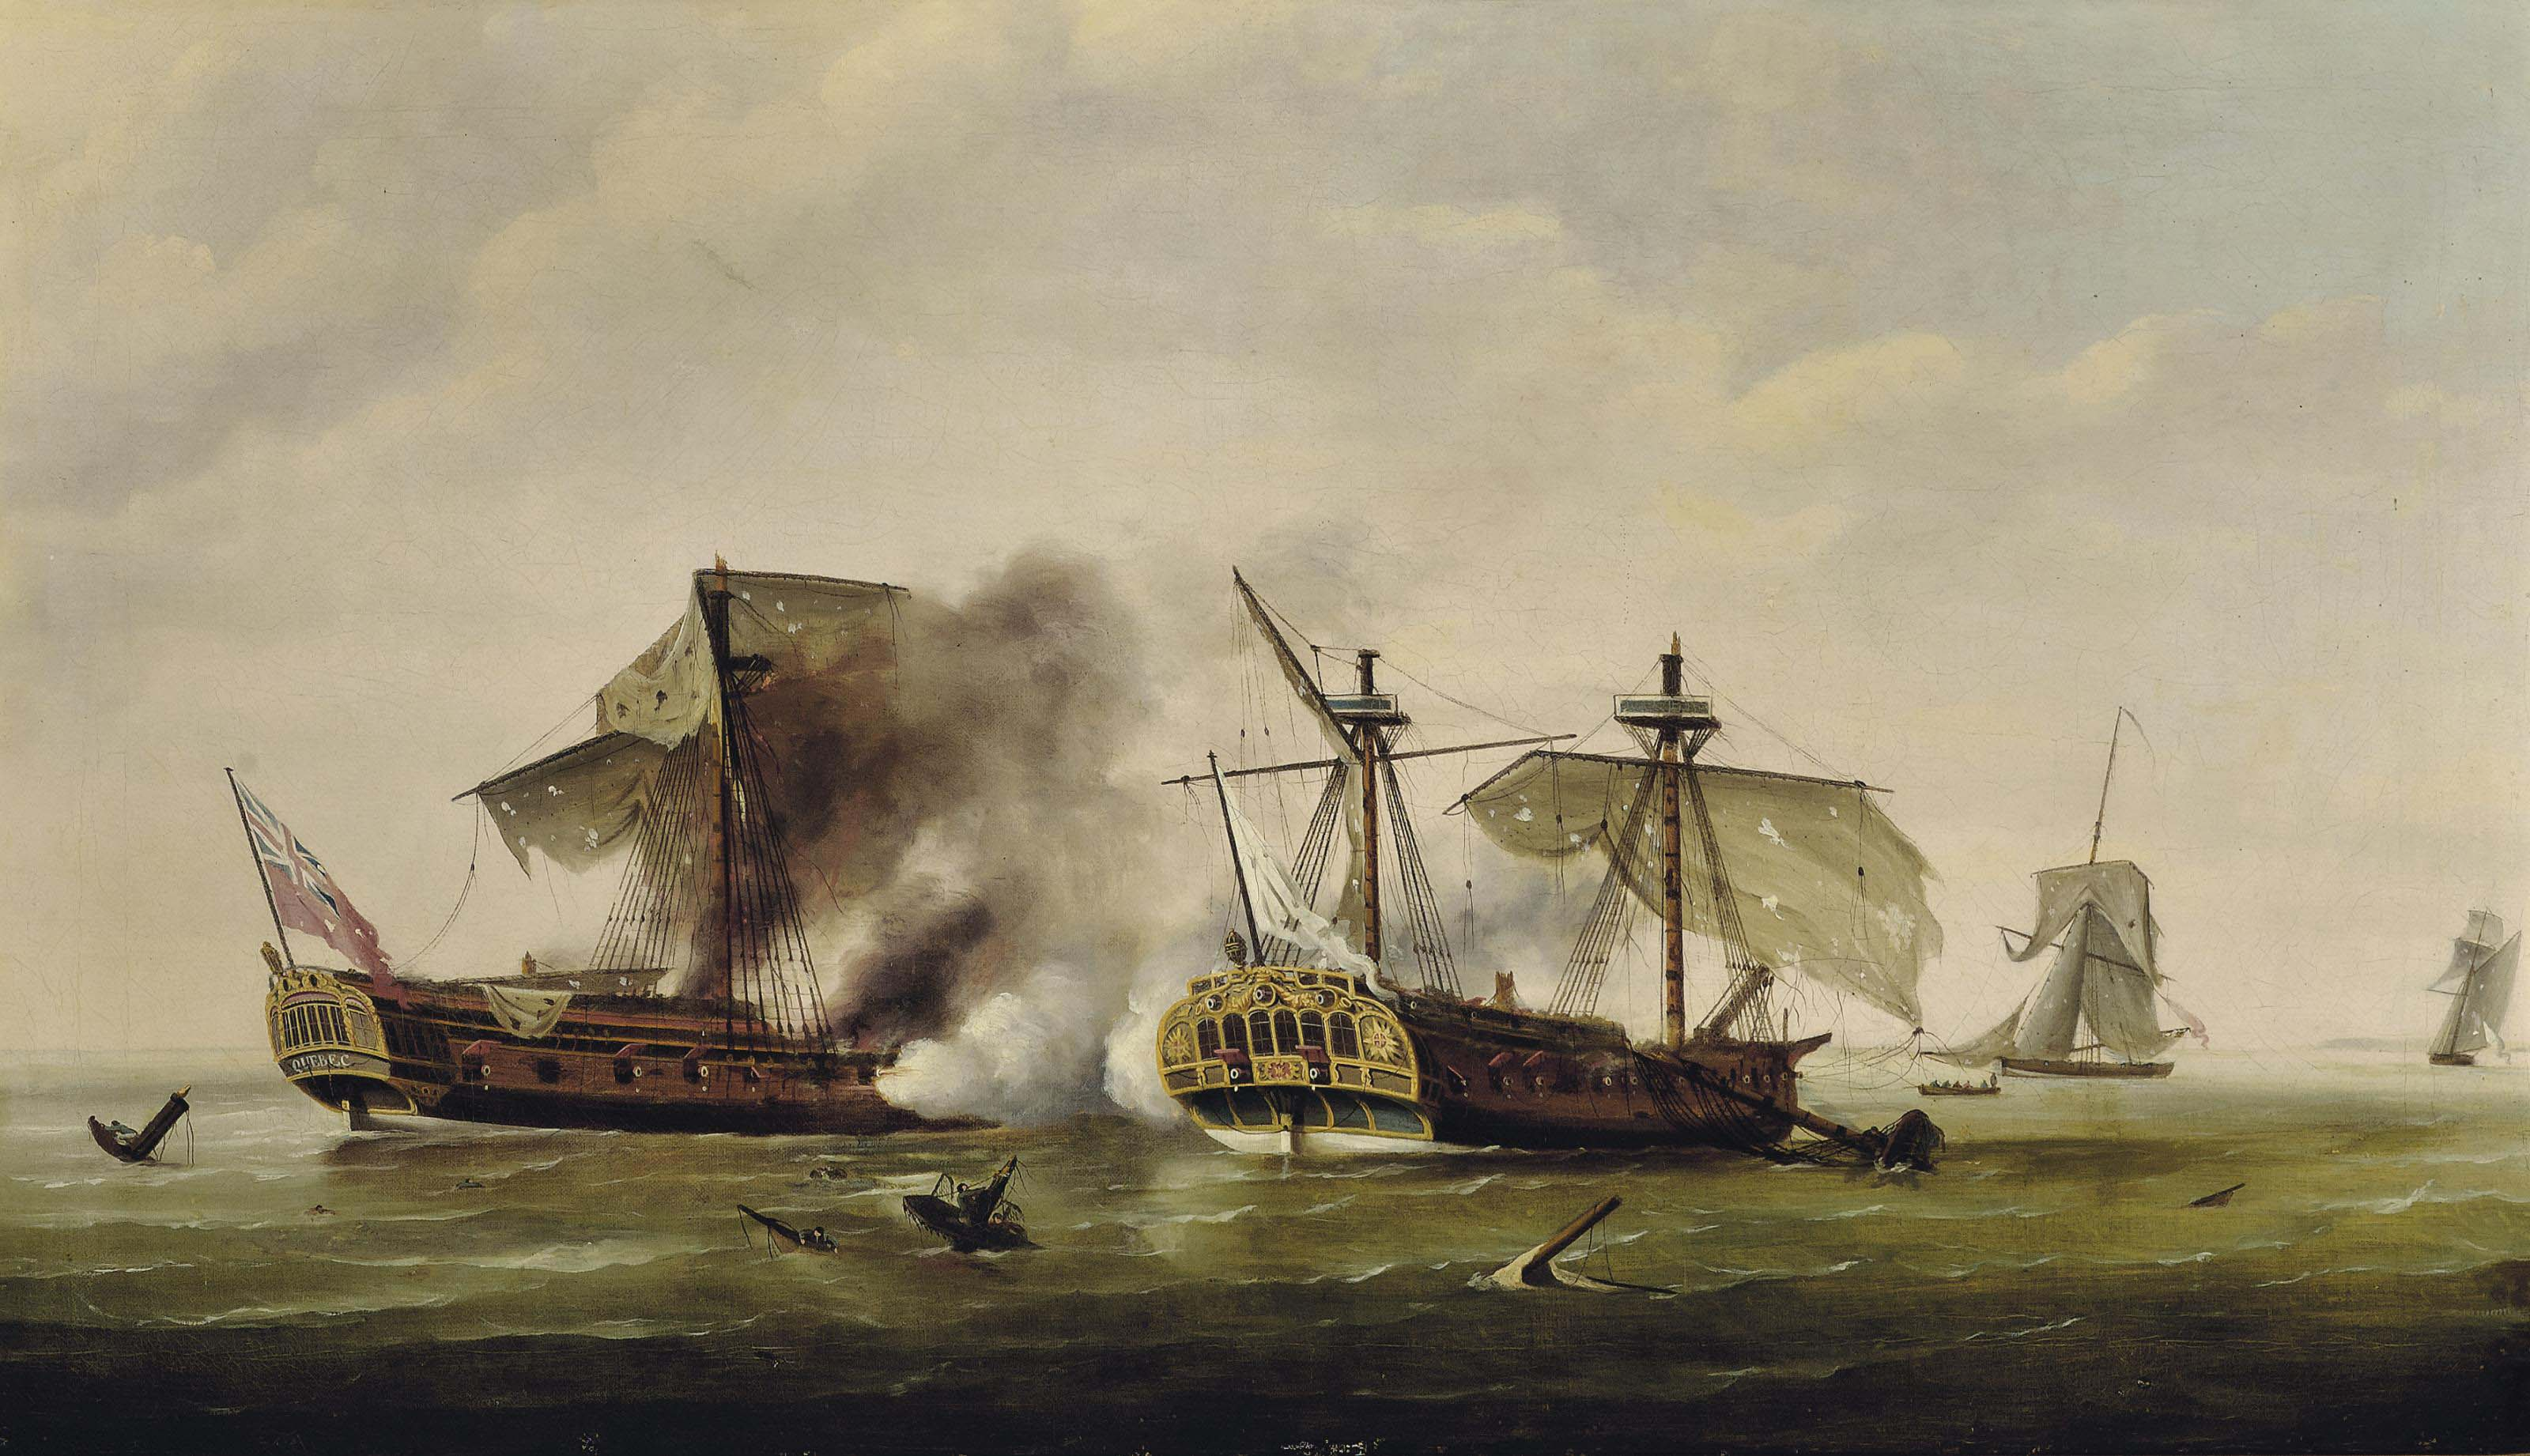 H.M.S. Quebec ablaze at the end of her epic struggle with the French frigate Surveillante, 6 October 1779